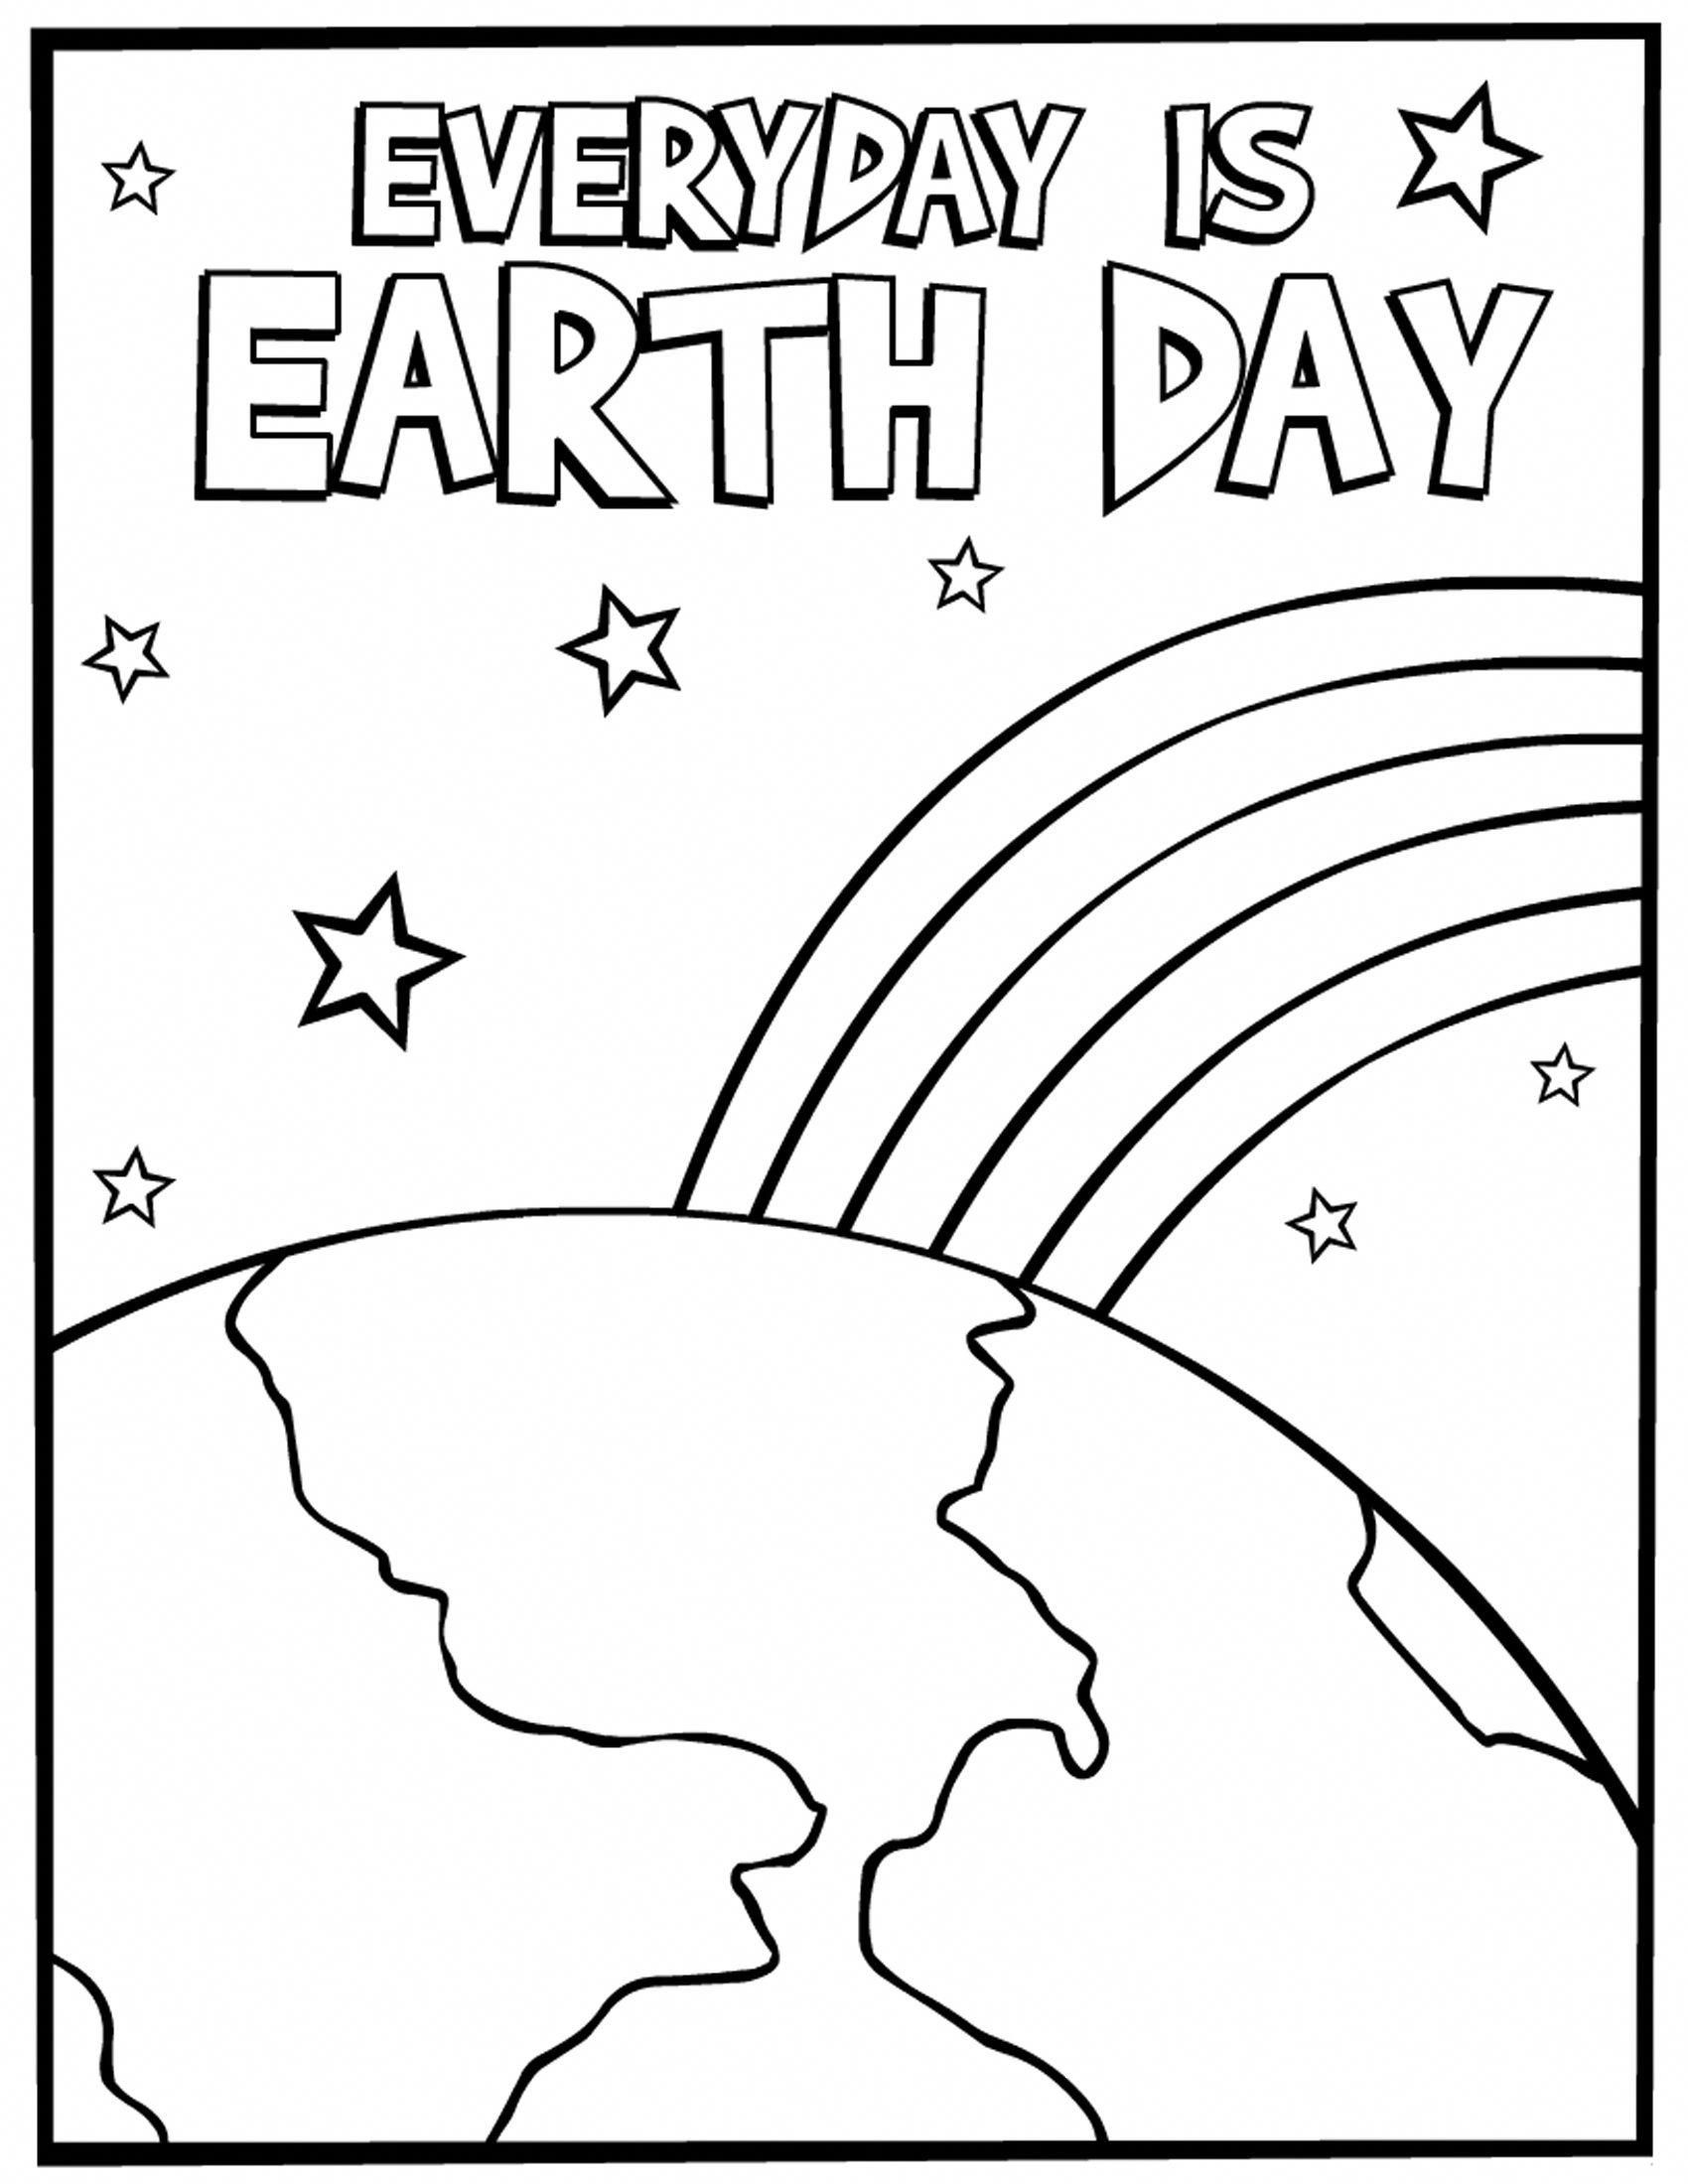 Earth Day Coloring Pages With Images